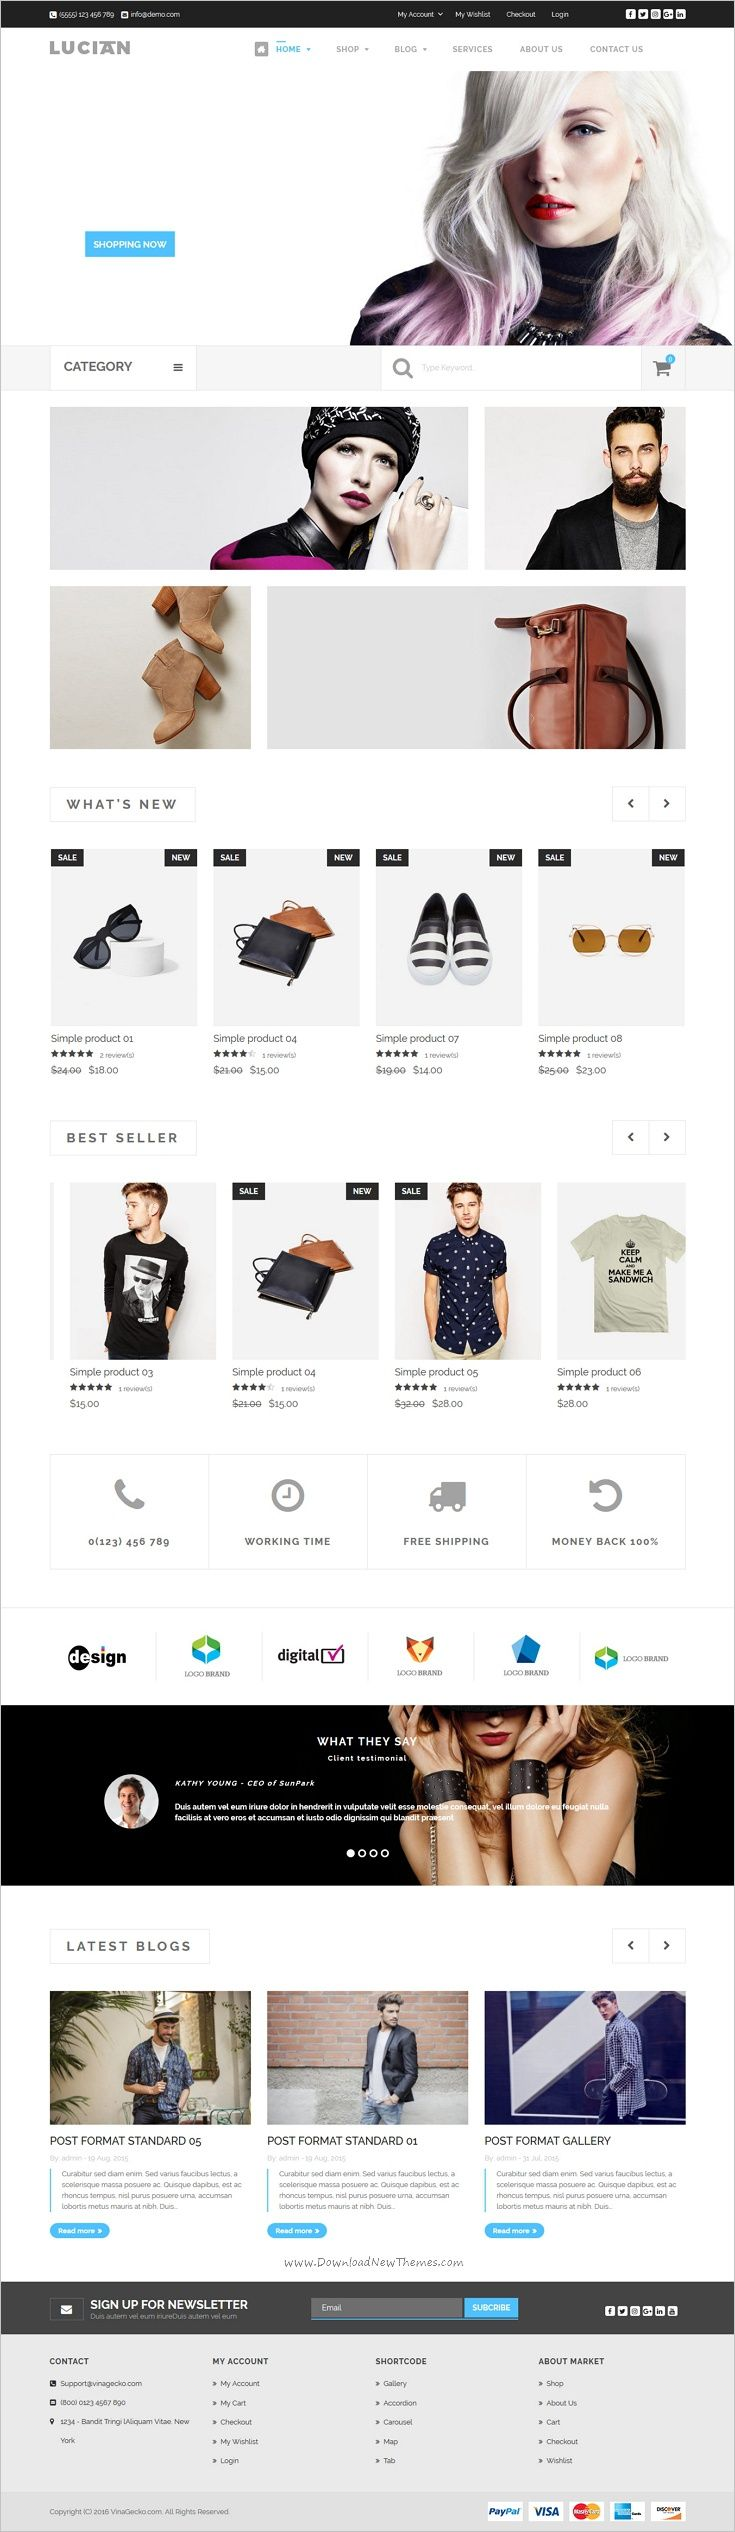 VG Lucian is a well-designed responsive #WooCommerce #WordPress theme for stunning #eCommerce website with 8 unique homepage layouts download now➩ https://themeforest.net/item/vg-lucian-responsive-ecommerce-wordpress-theme/17042399?ref=Datasata